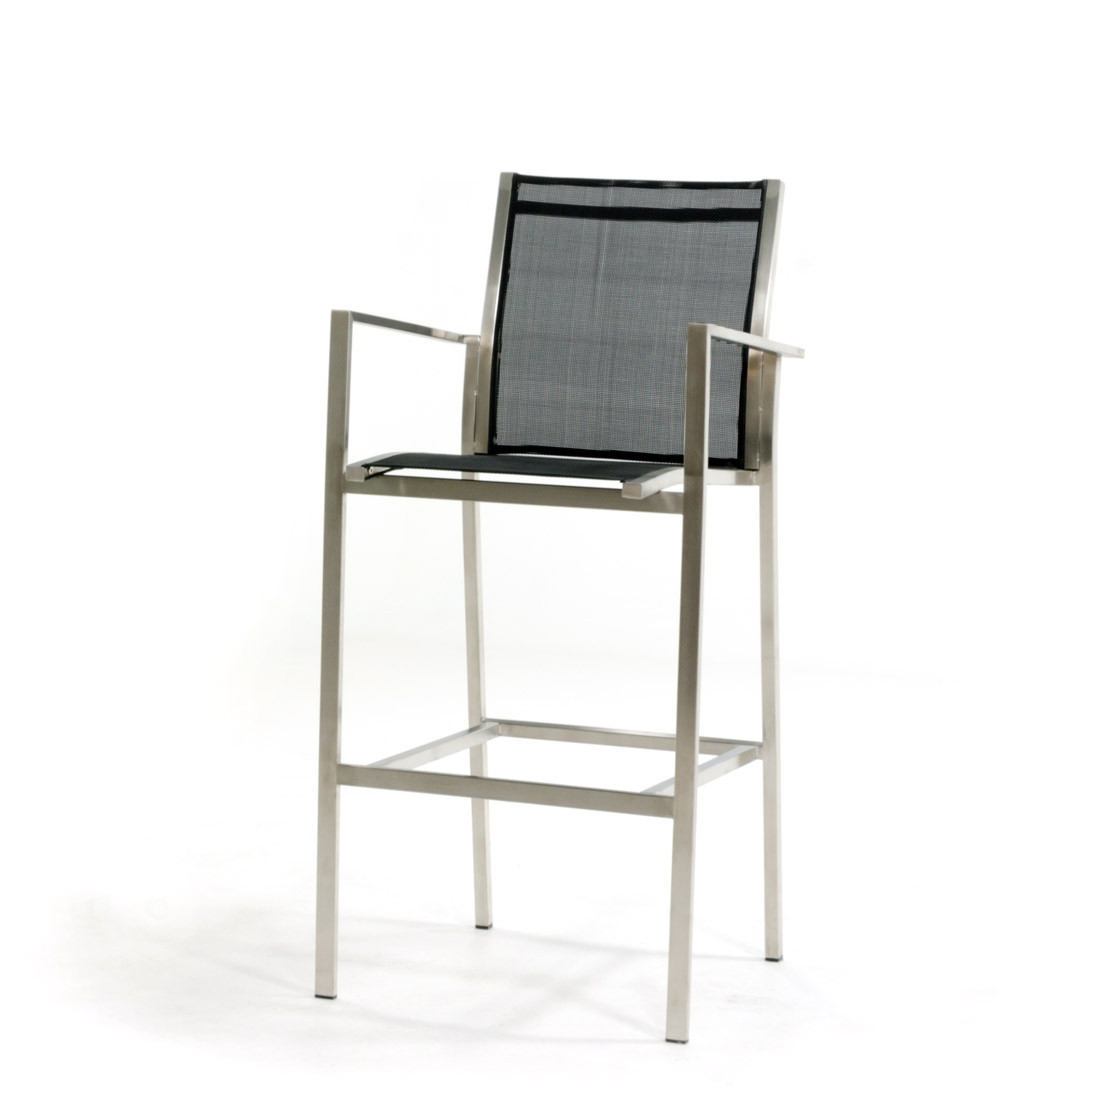 Falck RVS black bar chair